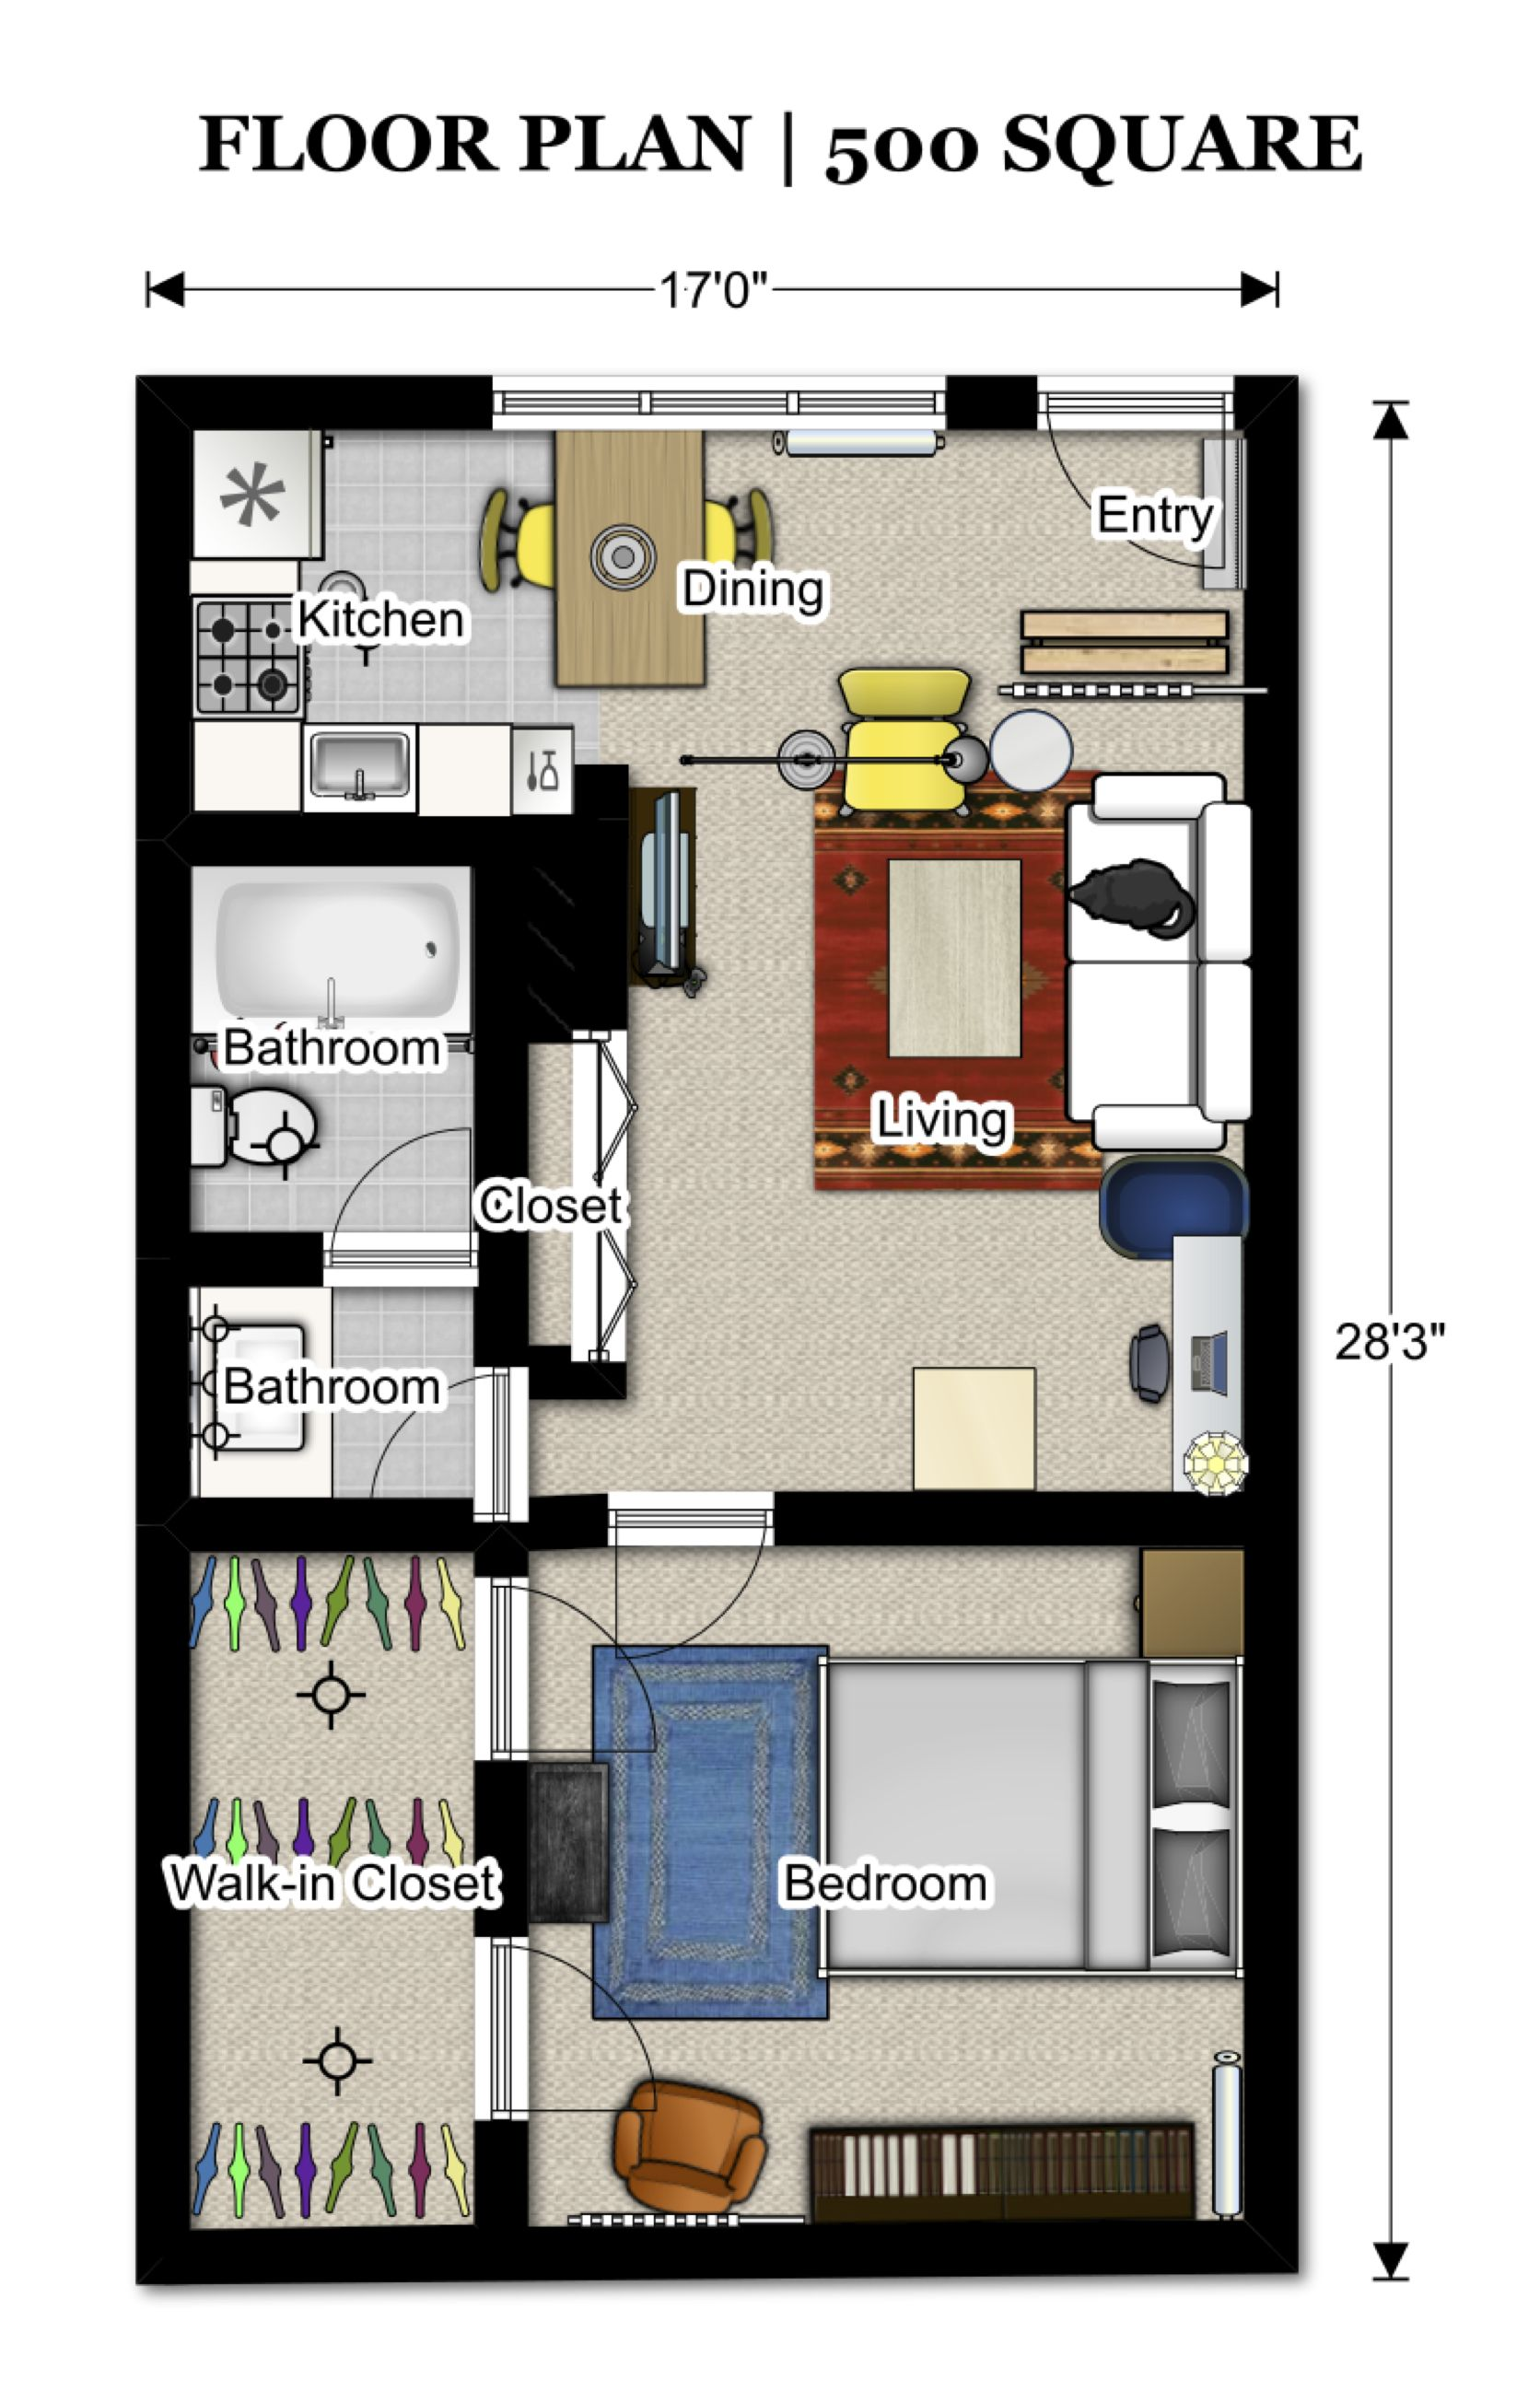 500 square feet apartment floor plan home design great lovely - Home Design Floor Plans